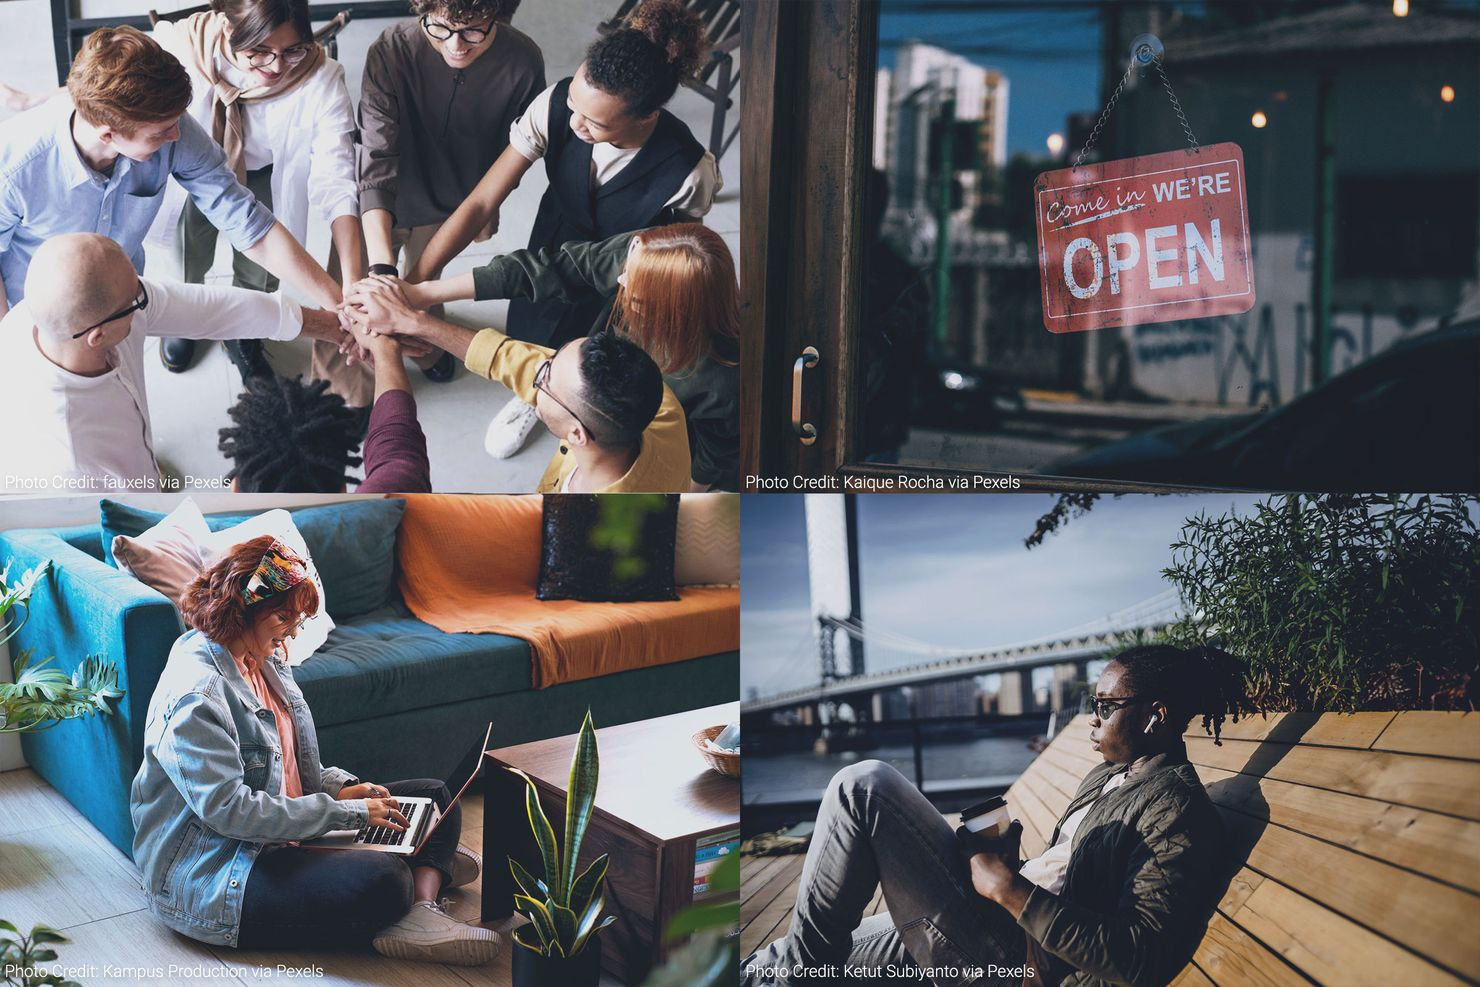 a collage of photos - eight people of different ethnicities stacking their hands in the center of a circle; a door to a business with a 'come in we're open' sign; a black man sitting on a bench outdoors listening to a podcast; a white woman sitting on the floor of her living room watching a virtual event via her laptop